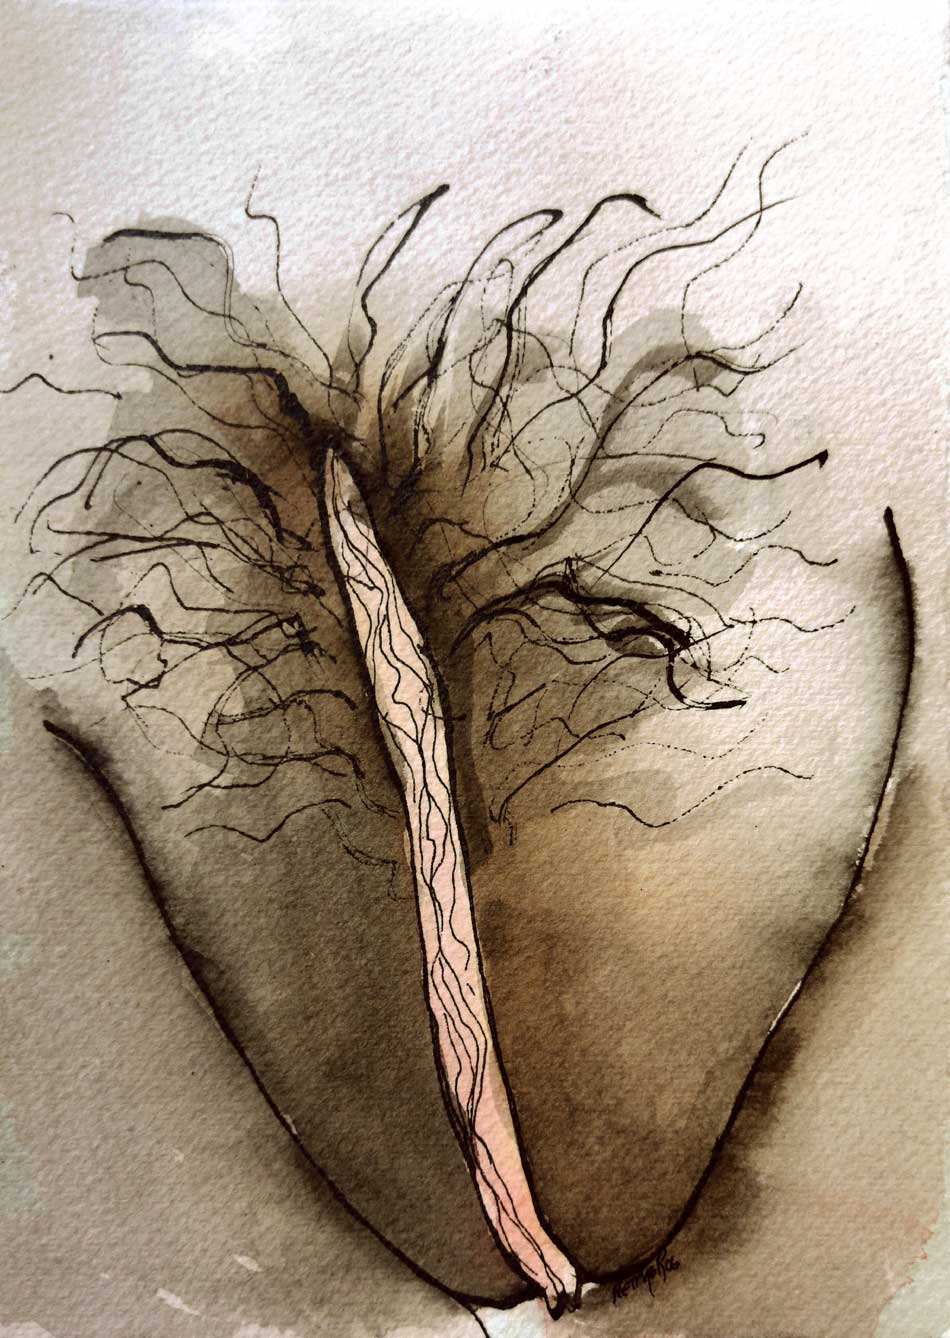 erotic drawing of a vulva